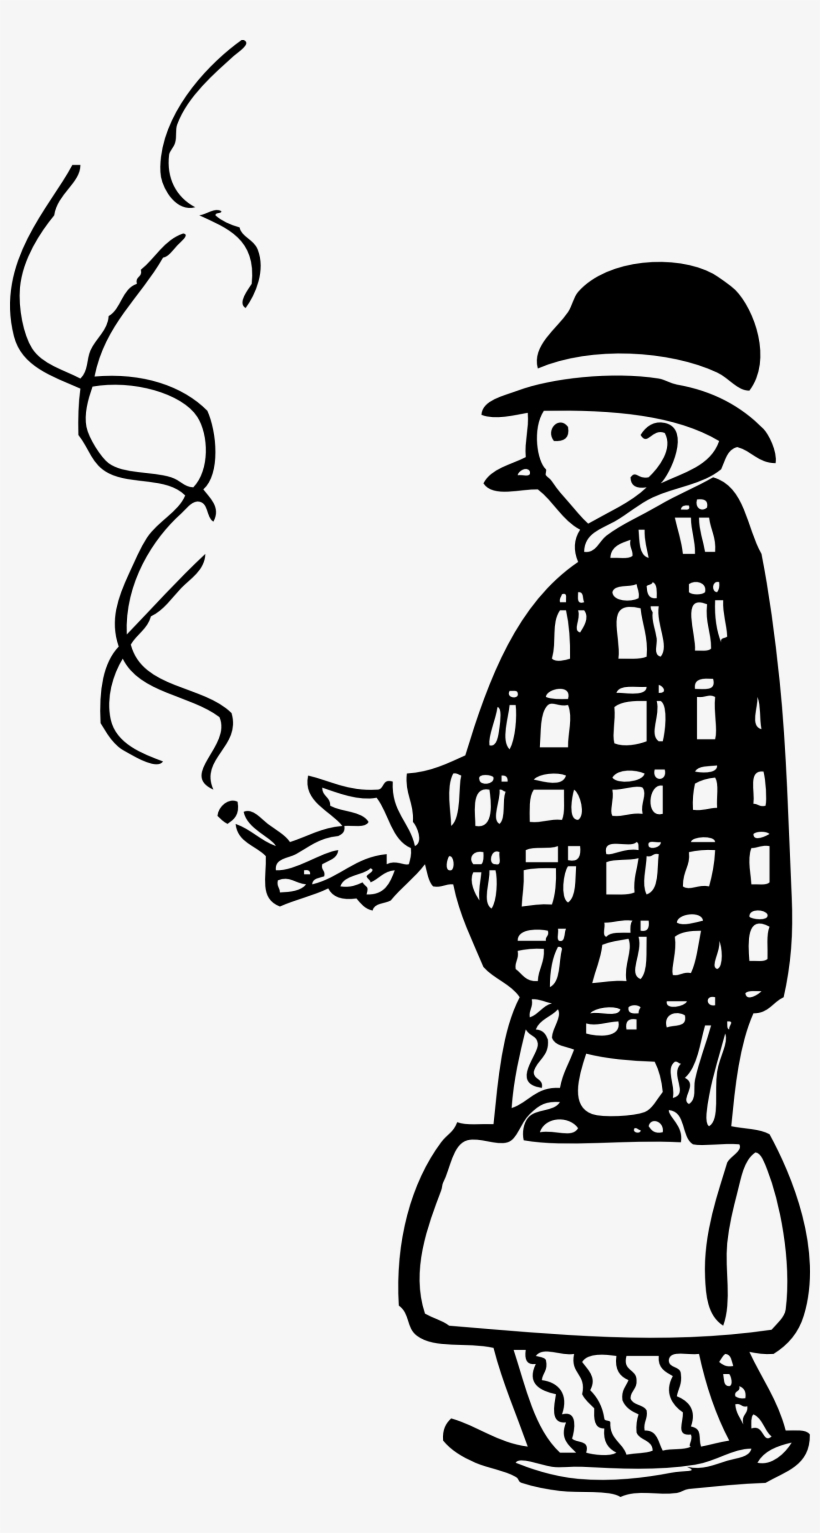 Funny Little Cigar Smoker Png Images - Man Smoking Cigar Png, transparent png #3847228